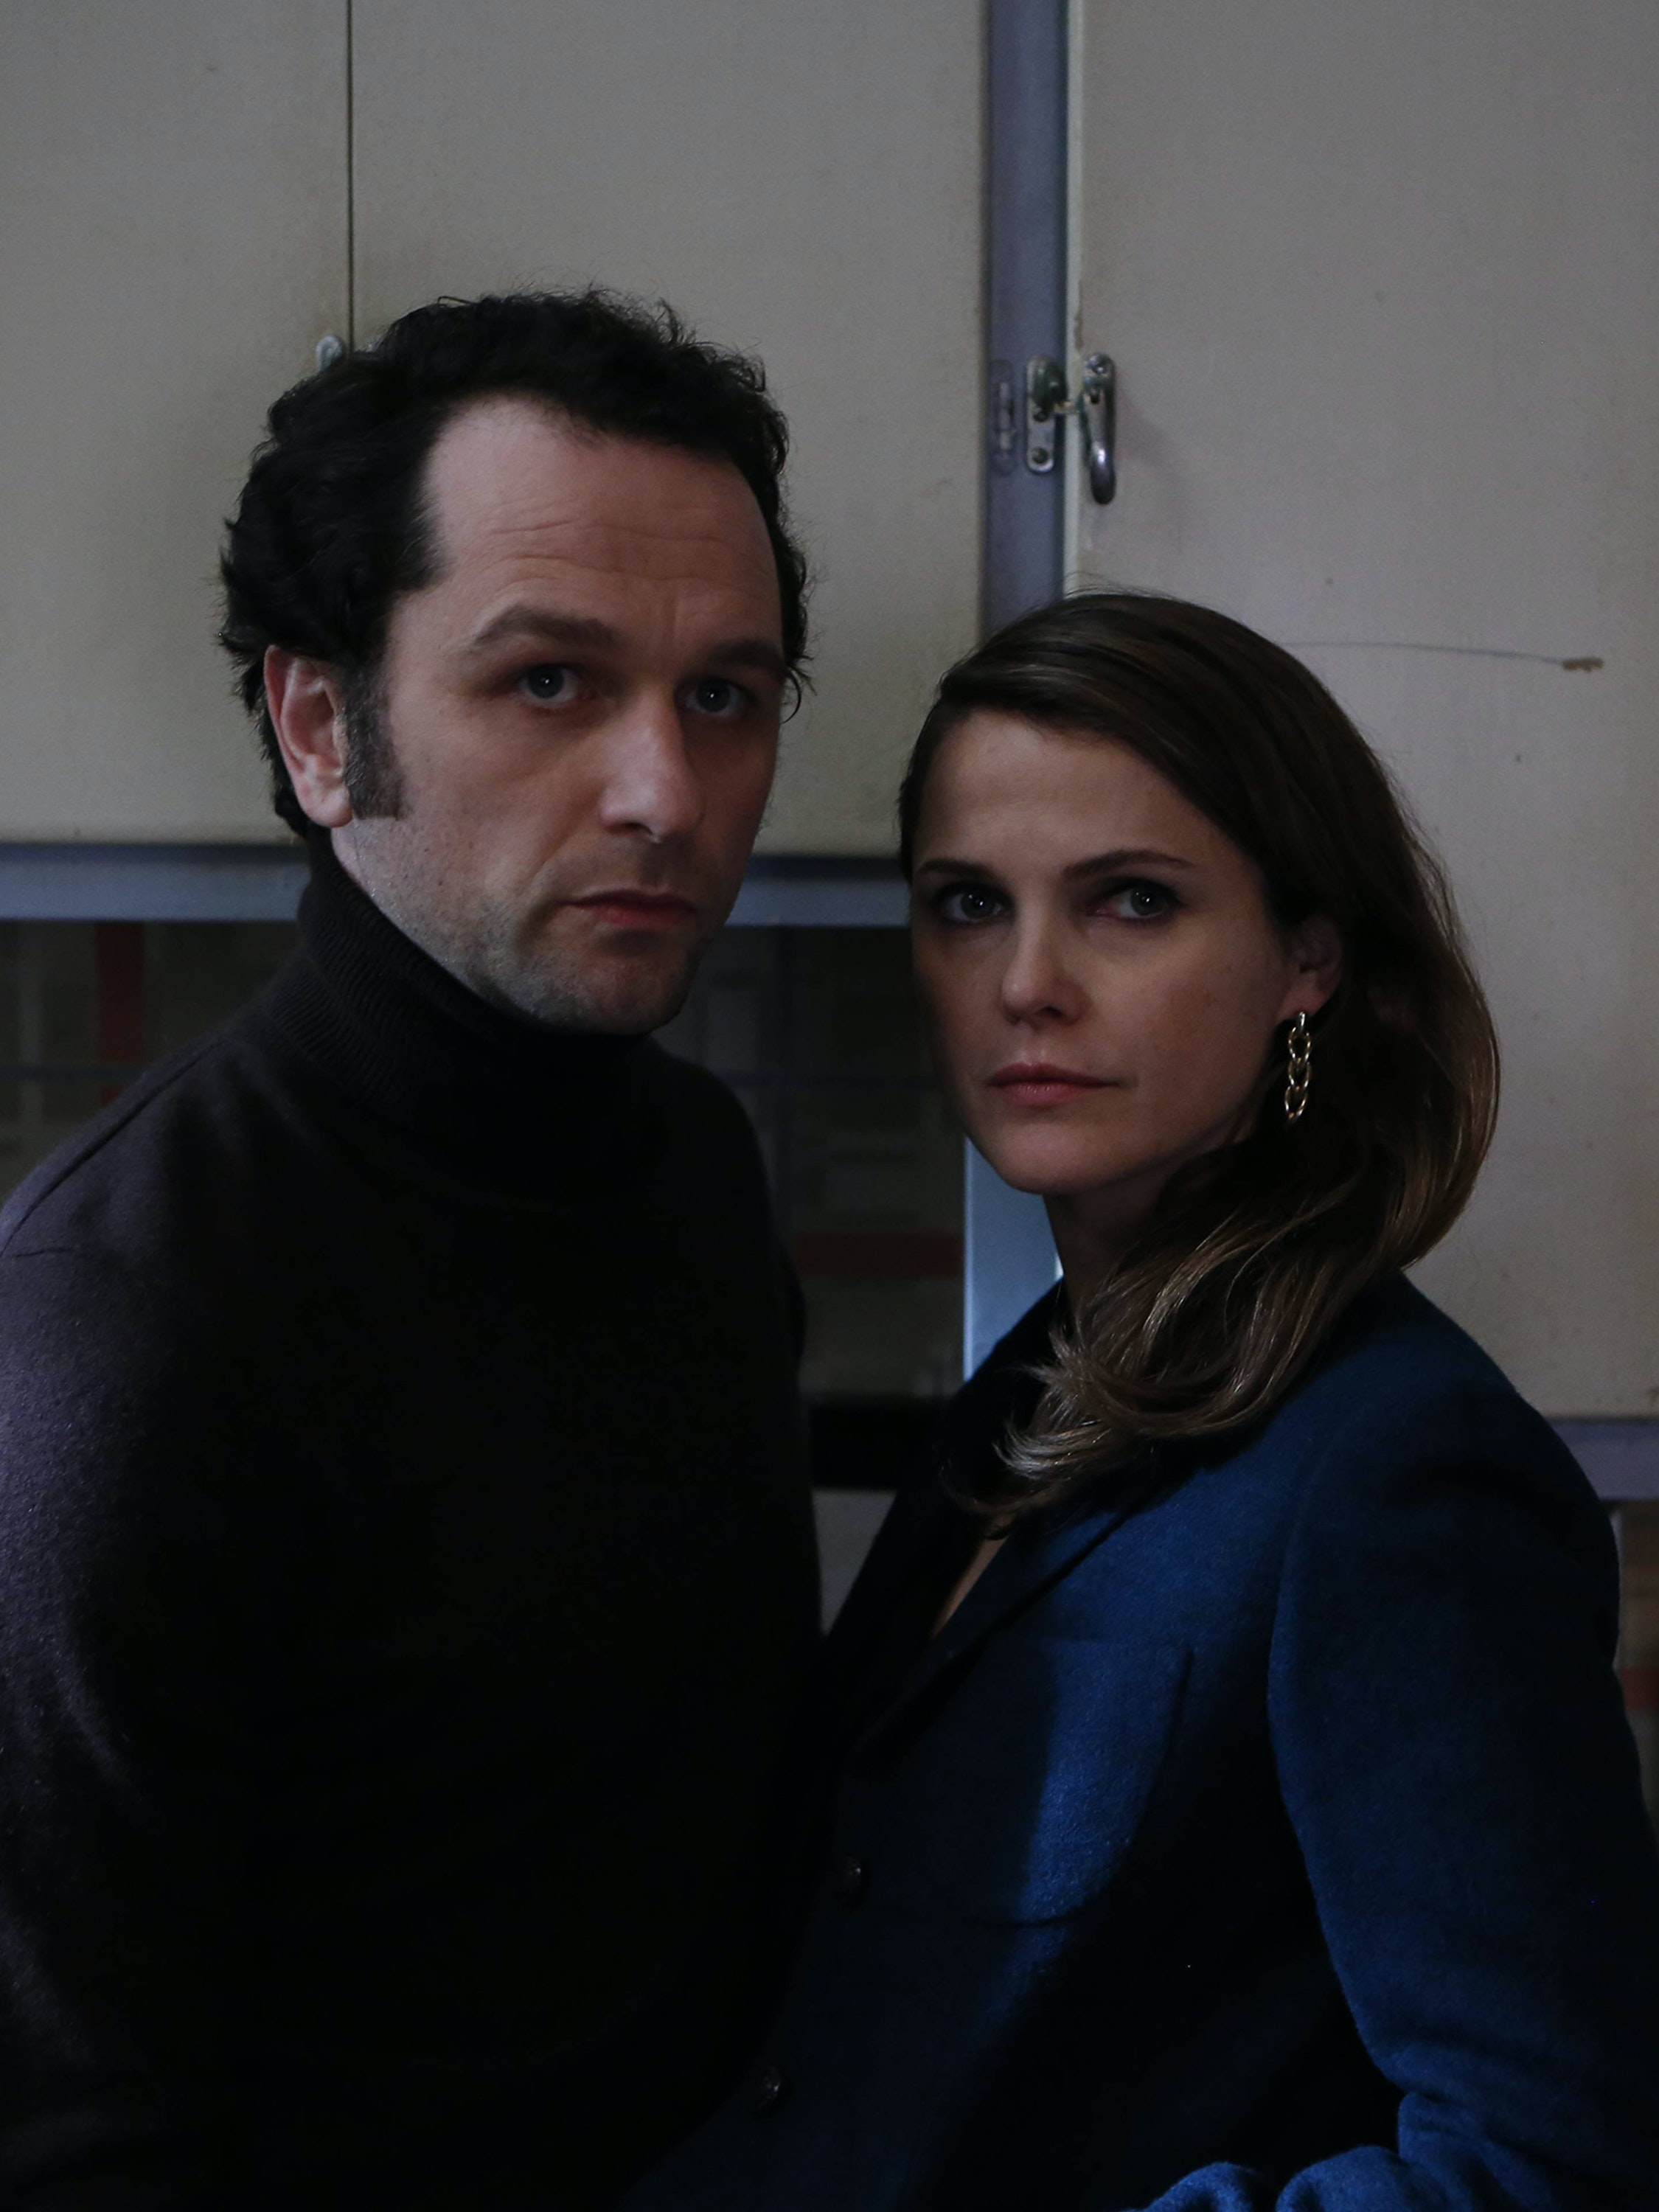 Philip Jennings, Elizabeth Jennings, The Americans, Season 4, Season 5